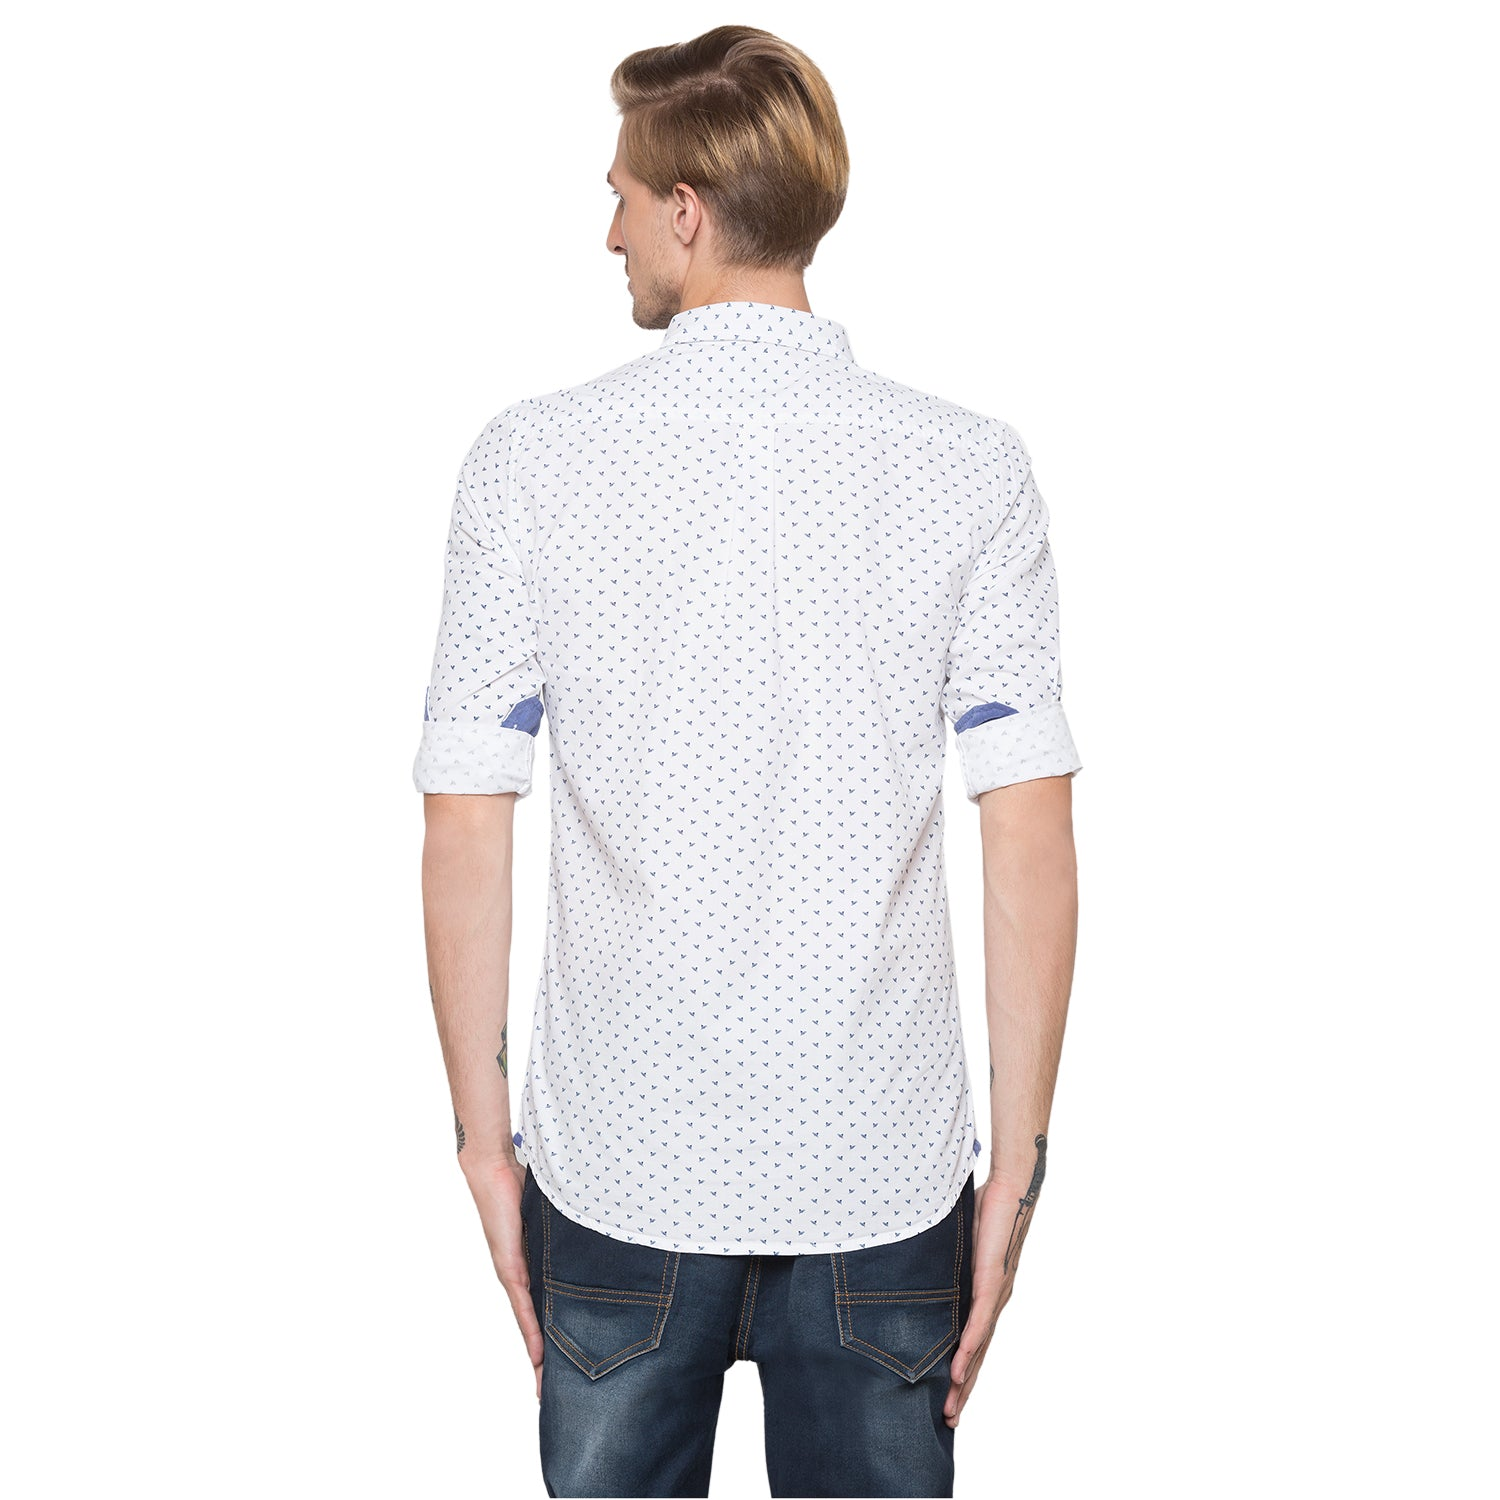 Globus White Printed Shirt-3